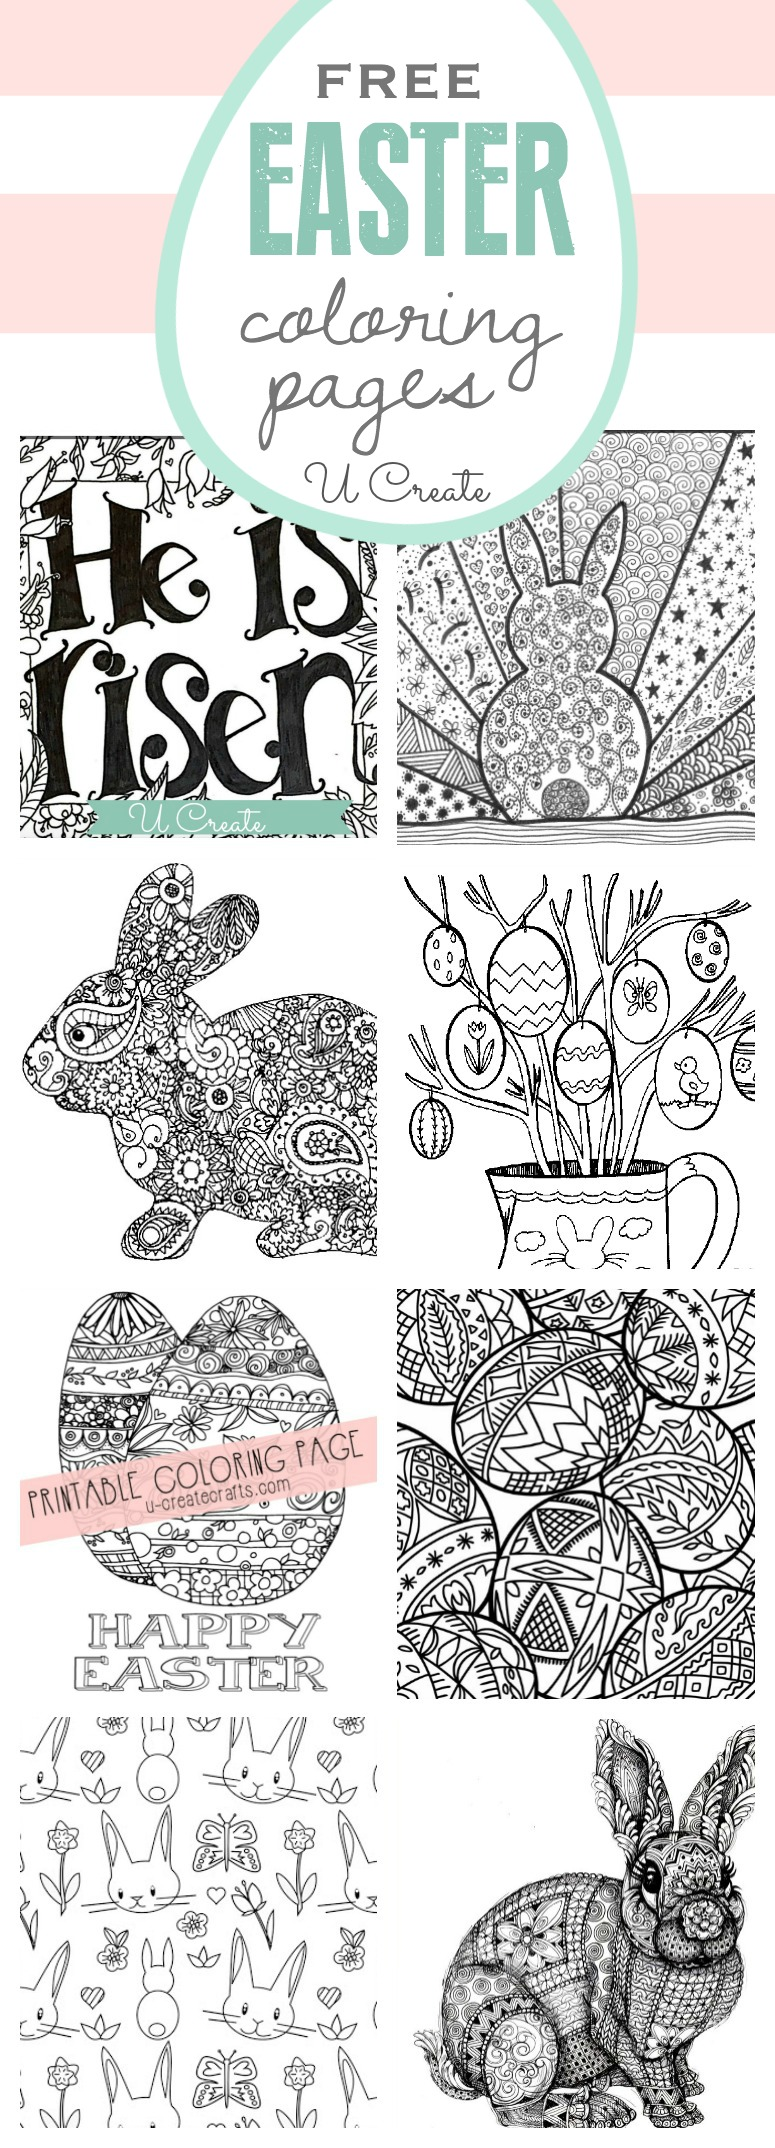 Free Easter Coloring Pages - U Create